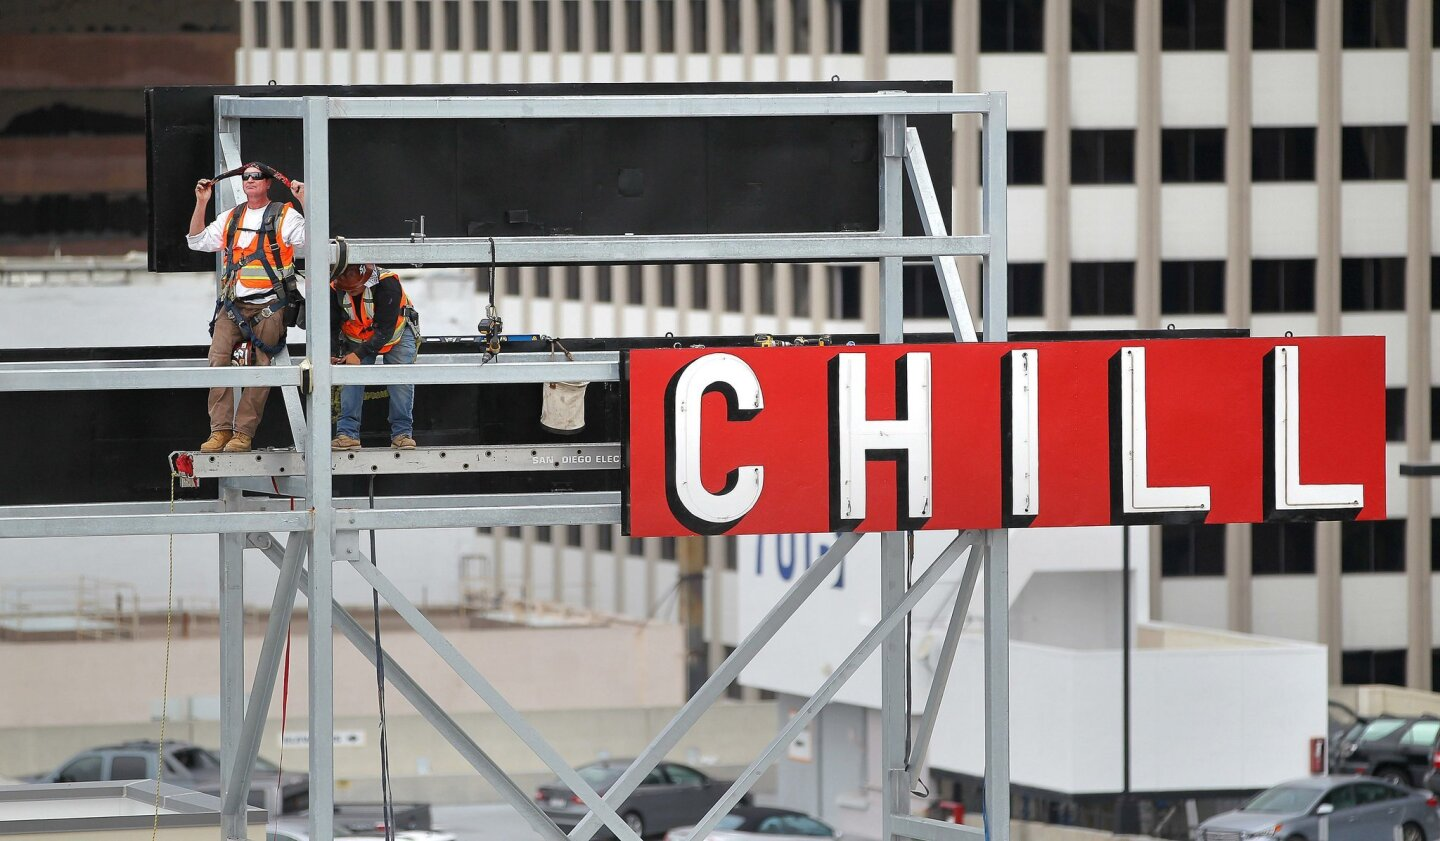 CHILL was the first part of the sign that went up on the east facing side of the building before CHUR and HOTEL.